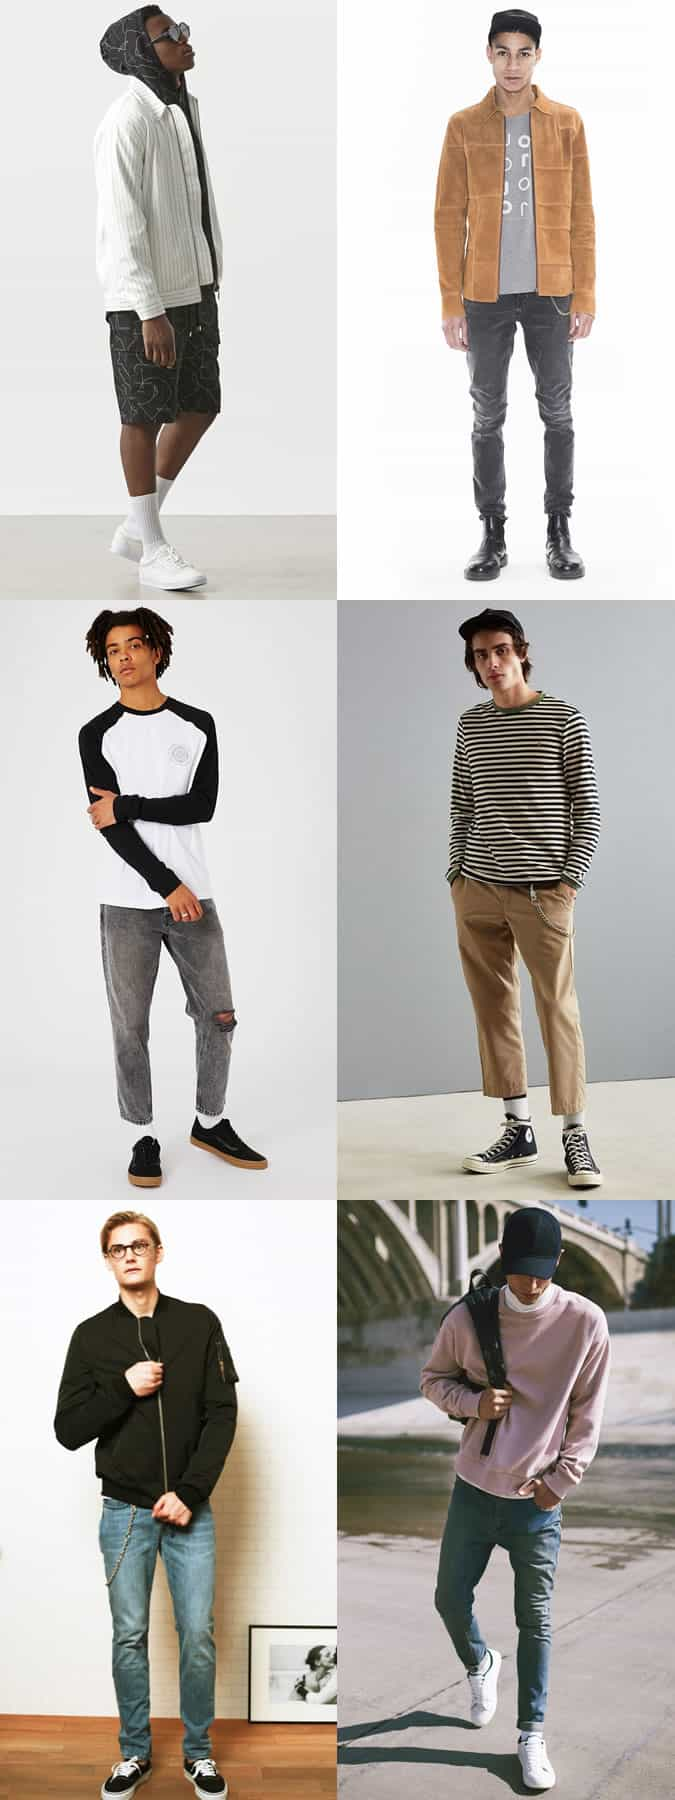 How to wear white tube/sports socks, wallet chains and skate accessories